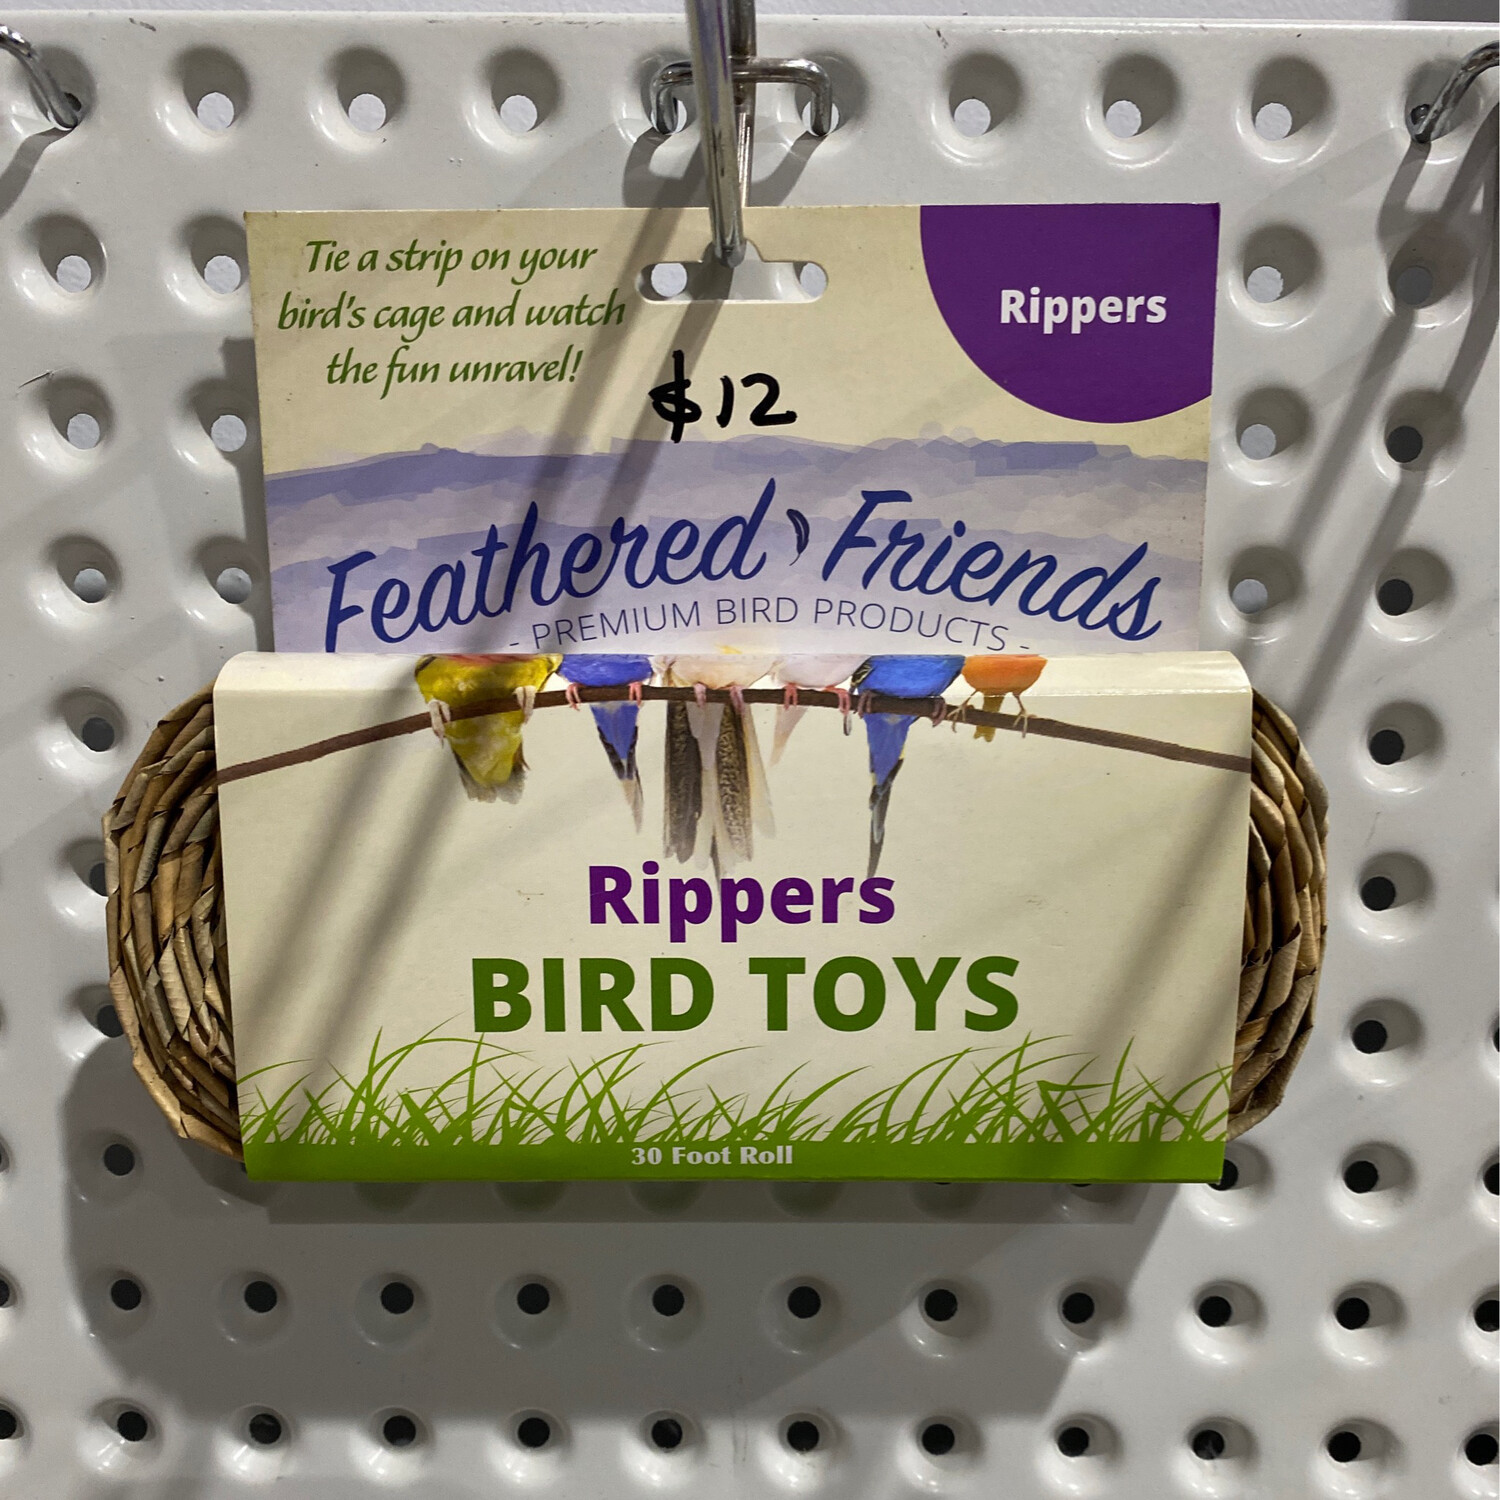 Feathered Friends Natural Rippers